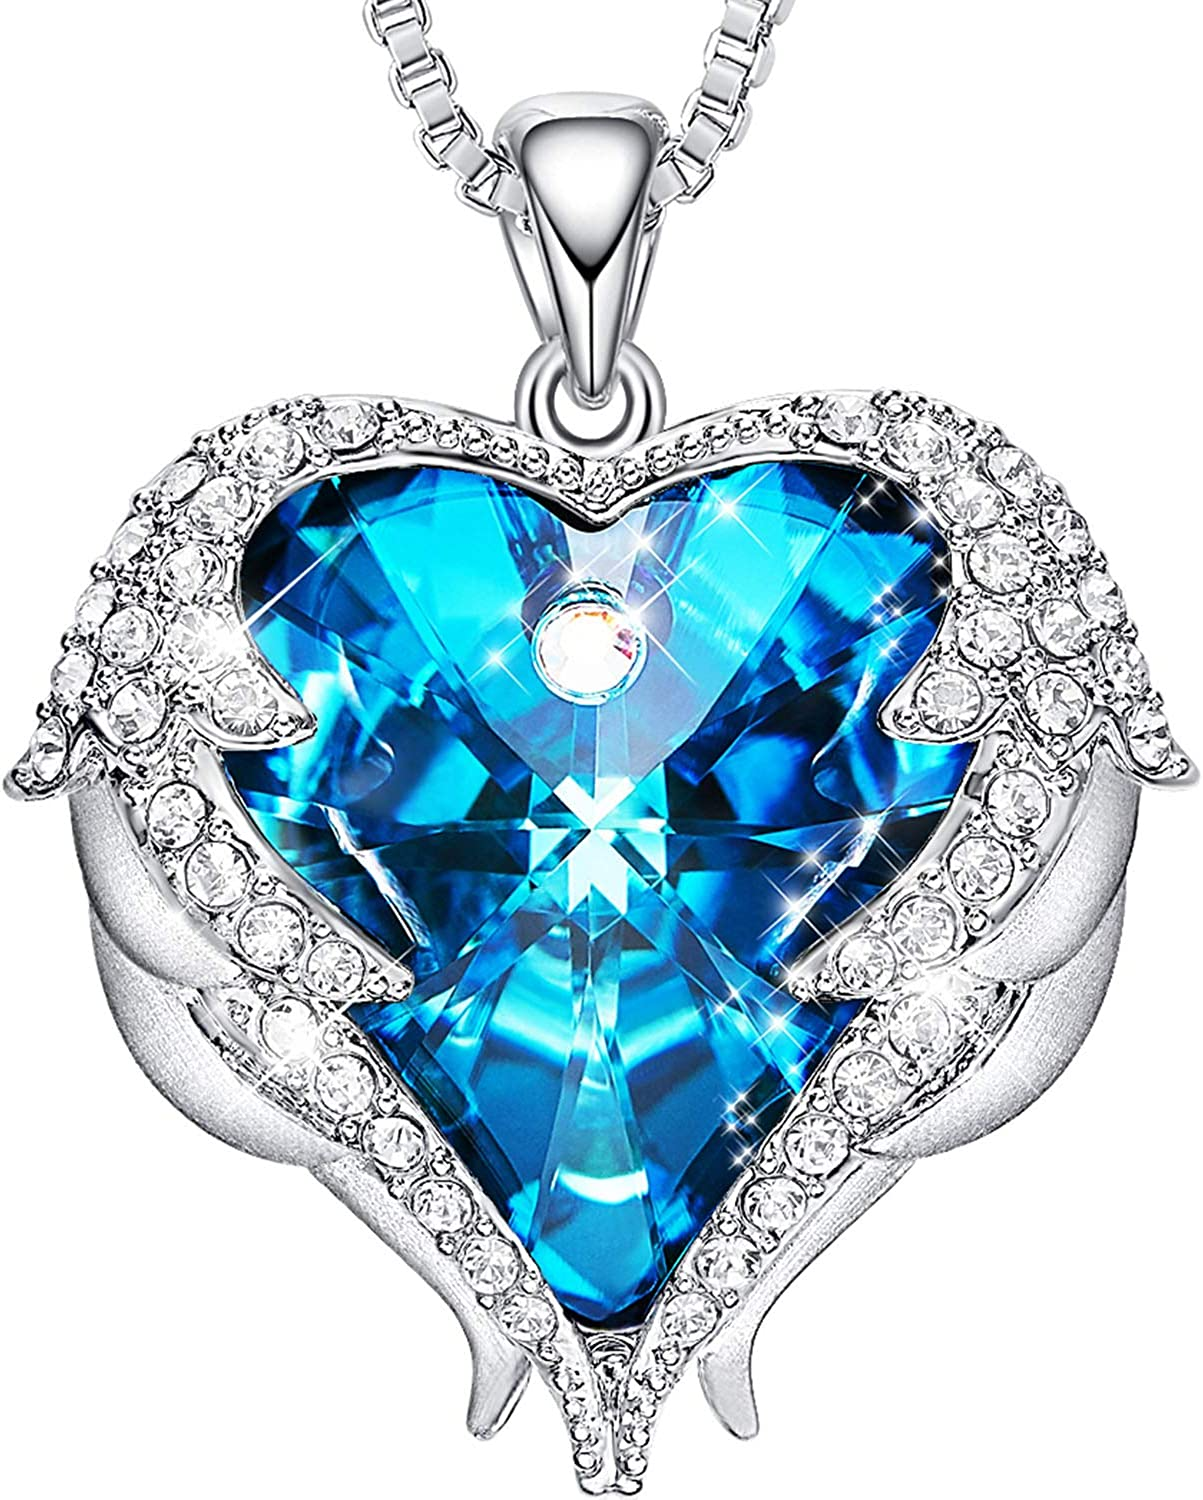 Ocean Heart Necklace Jewelry Wing Necklace Fashion Accessorie Gifts U2D4 V8T2